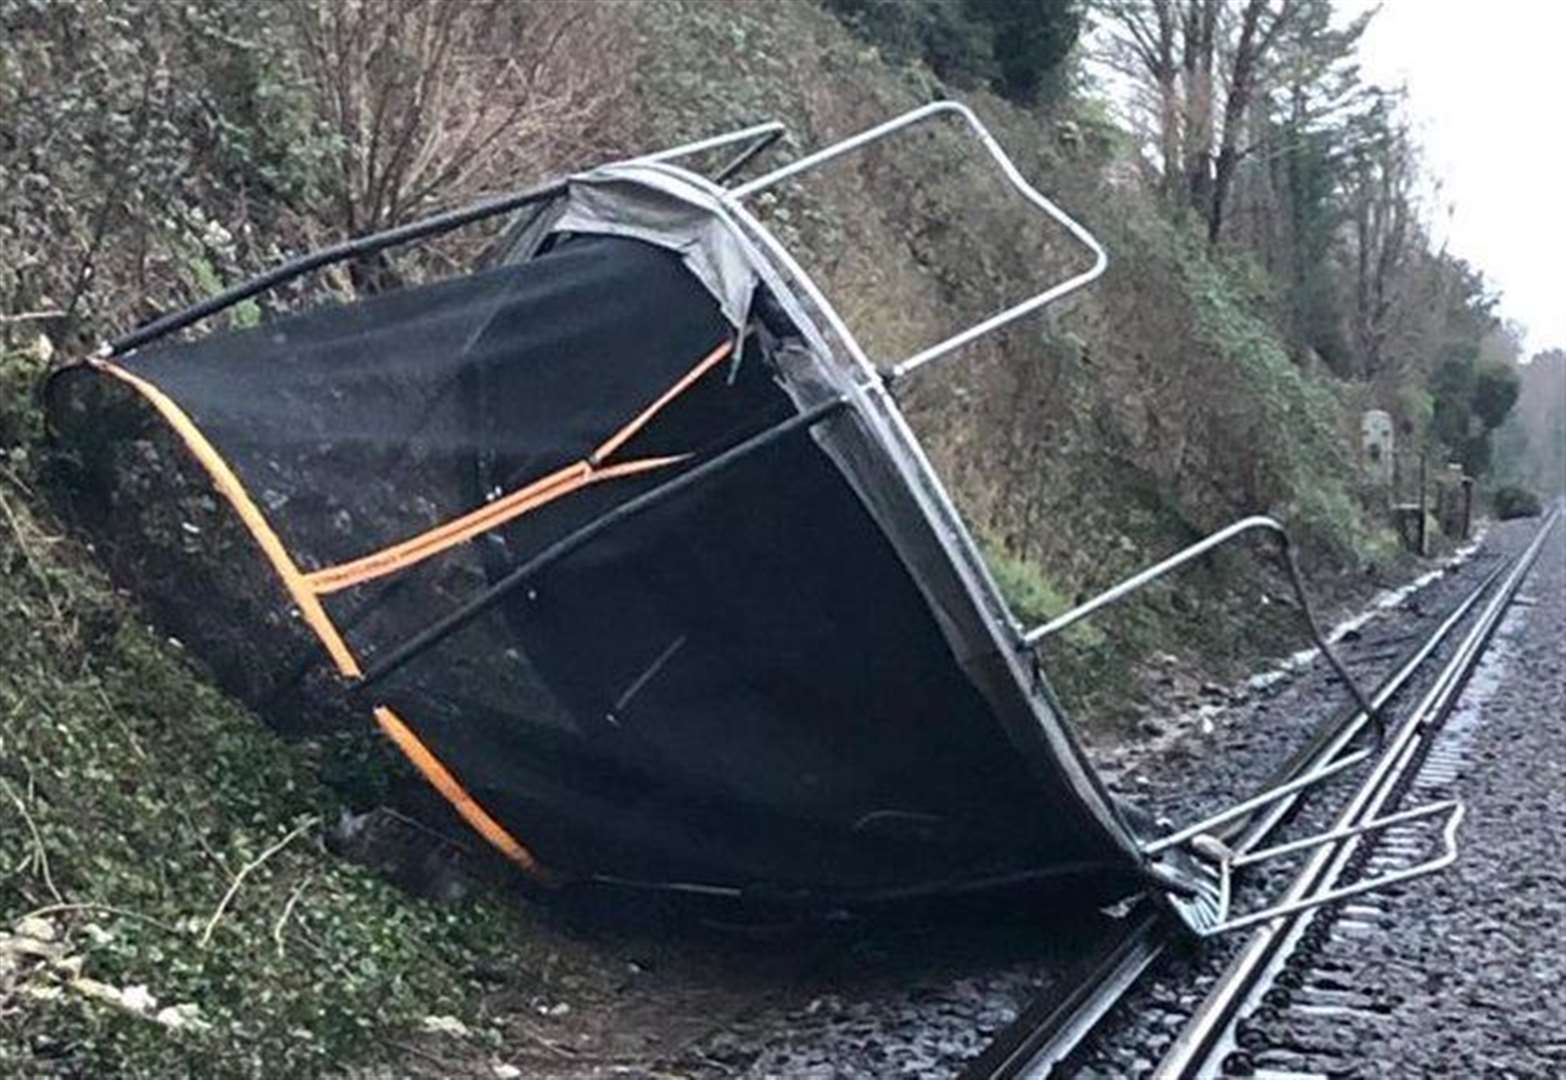 Trampoline on tracks causes disruption